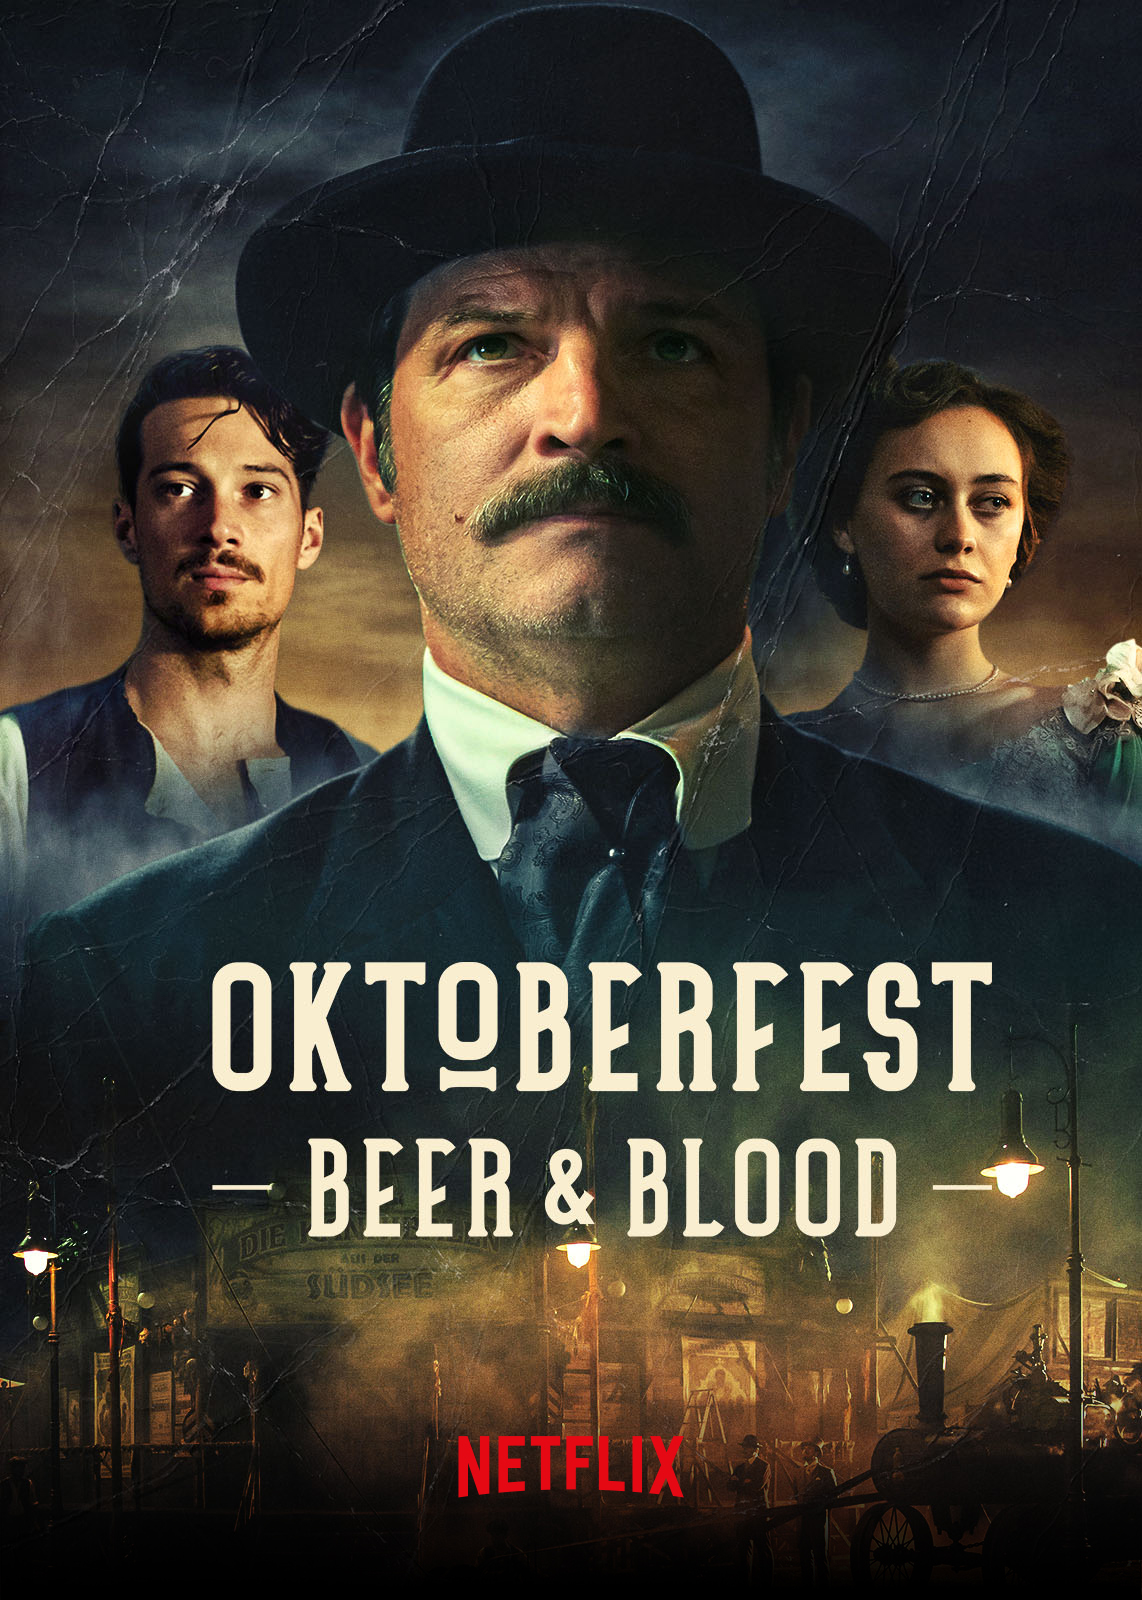 Oktoberfest: Beer & Blood (TV Mini-Series 2020– ) - IMDb